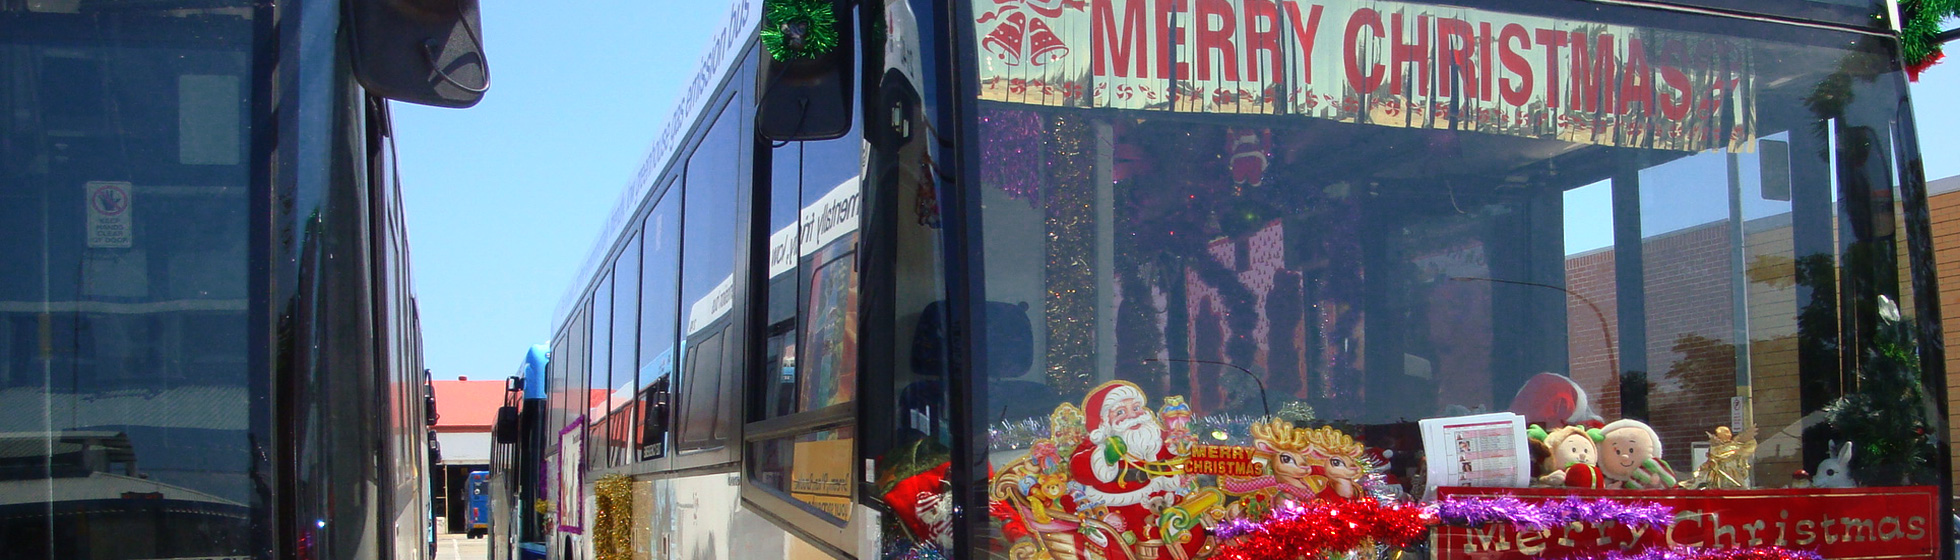 The Christmas Bus with decorrations raising money for Calvary charity